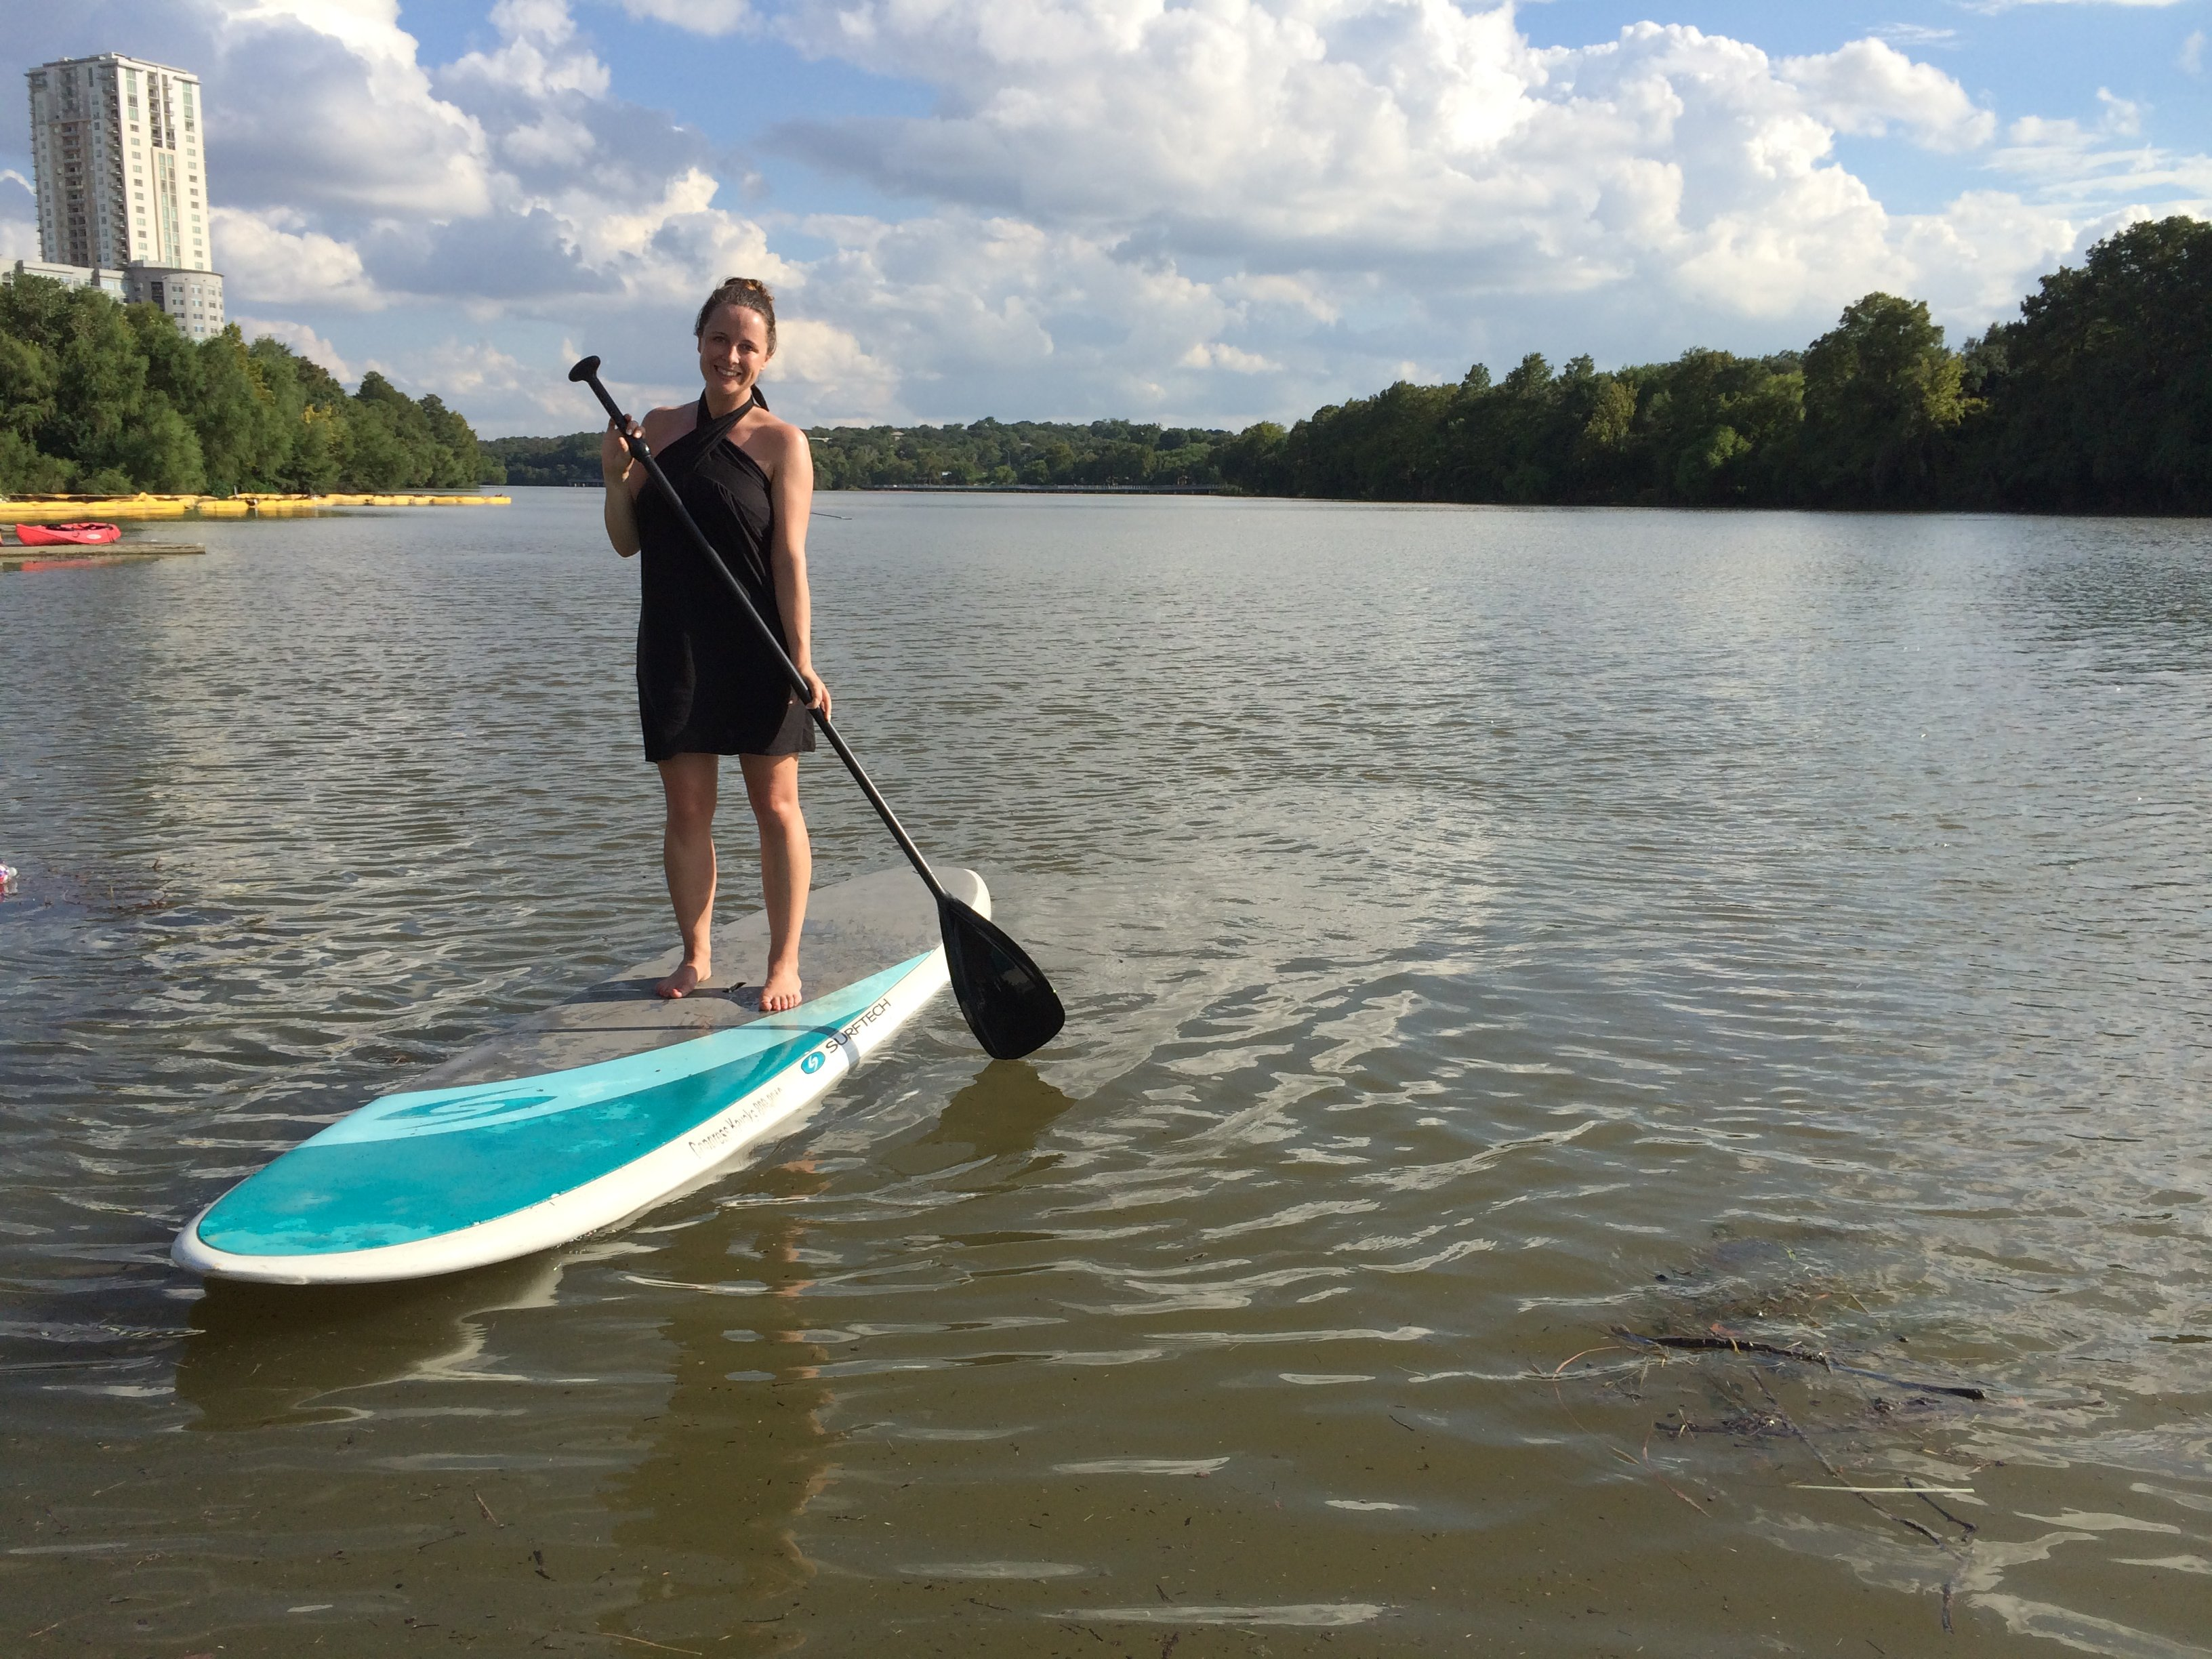 Stand-up paddle boarding in Austin, Texas